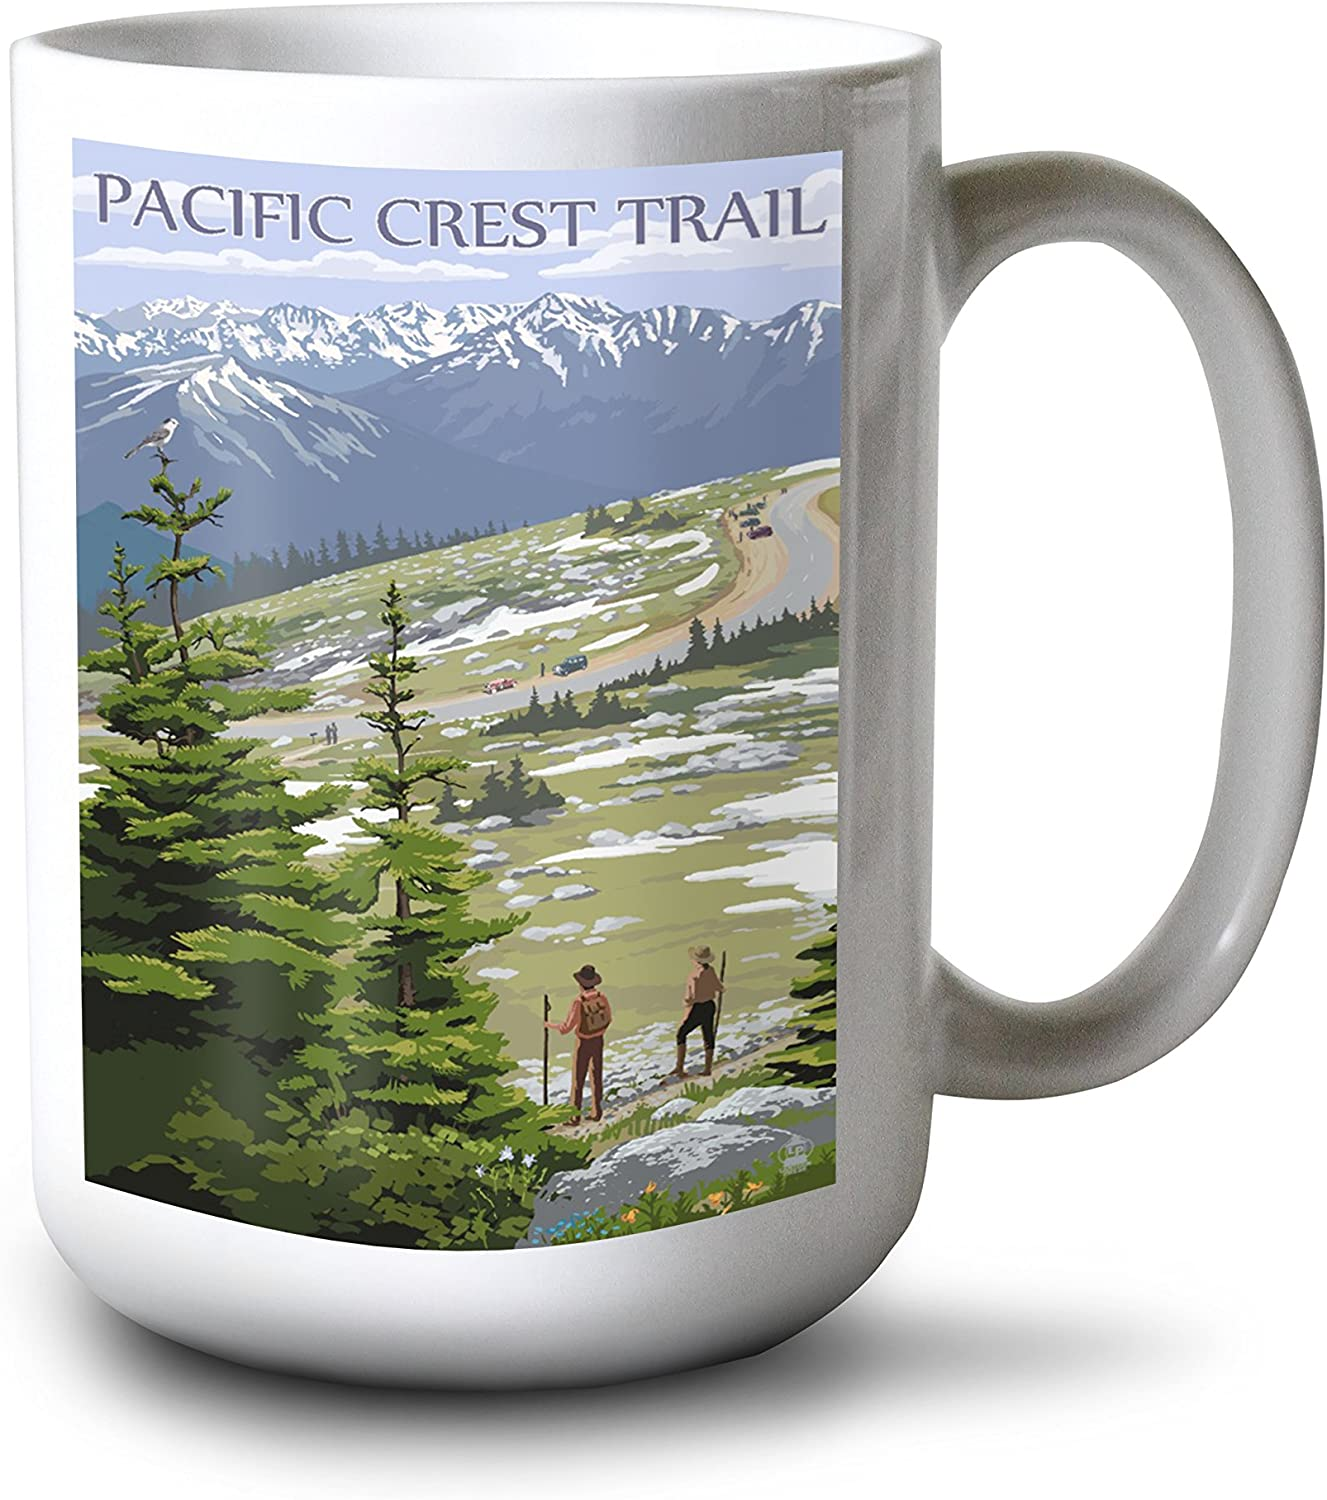 Pacific Crest Trail and Hikers (15oz White Ceramic Mug)